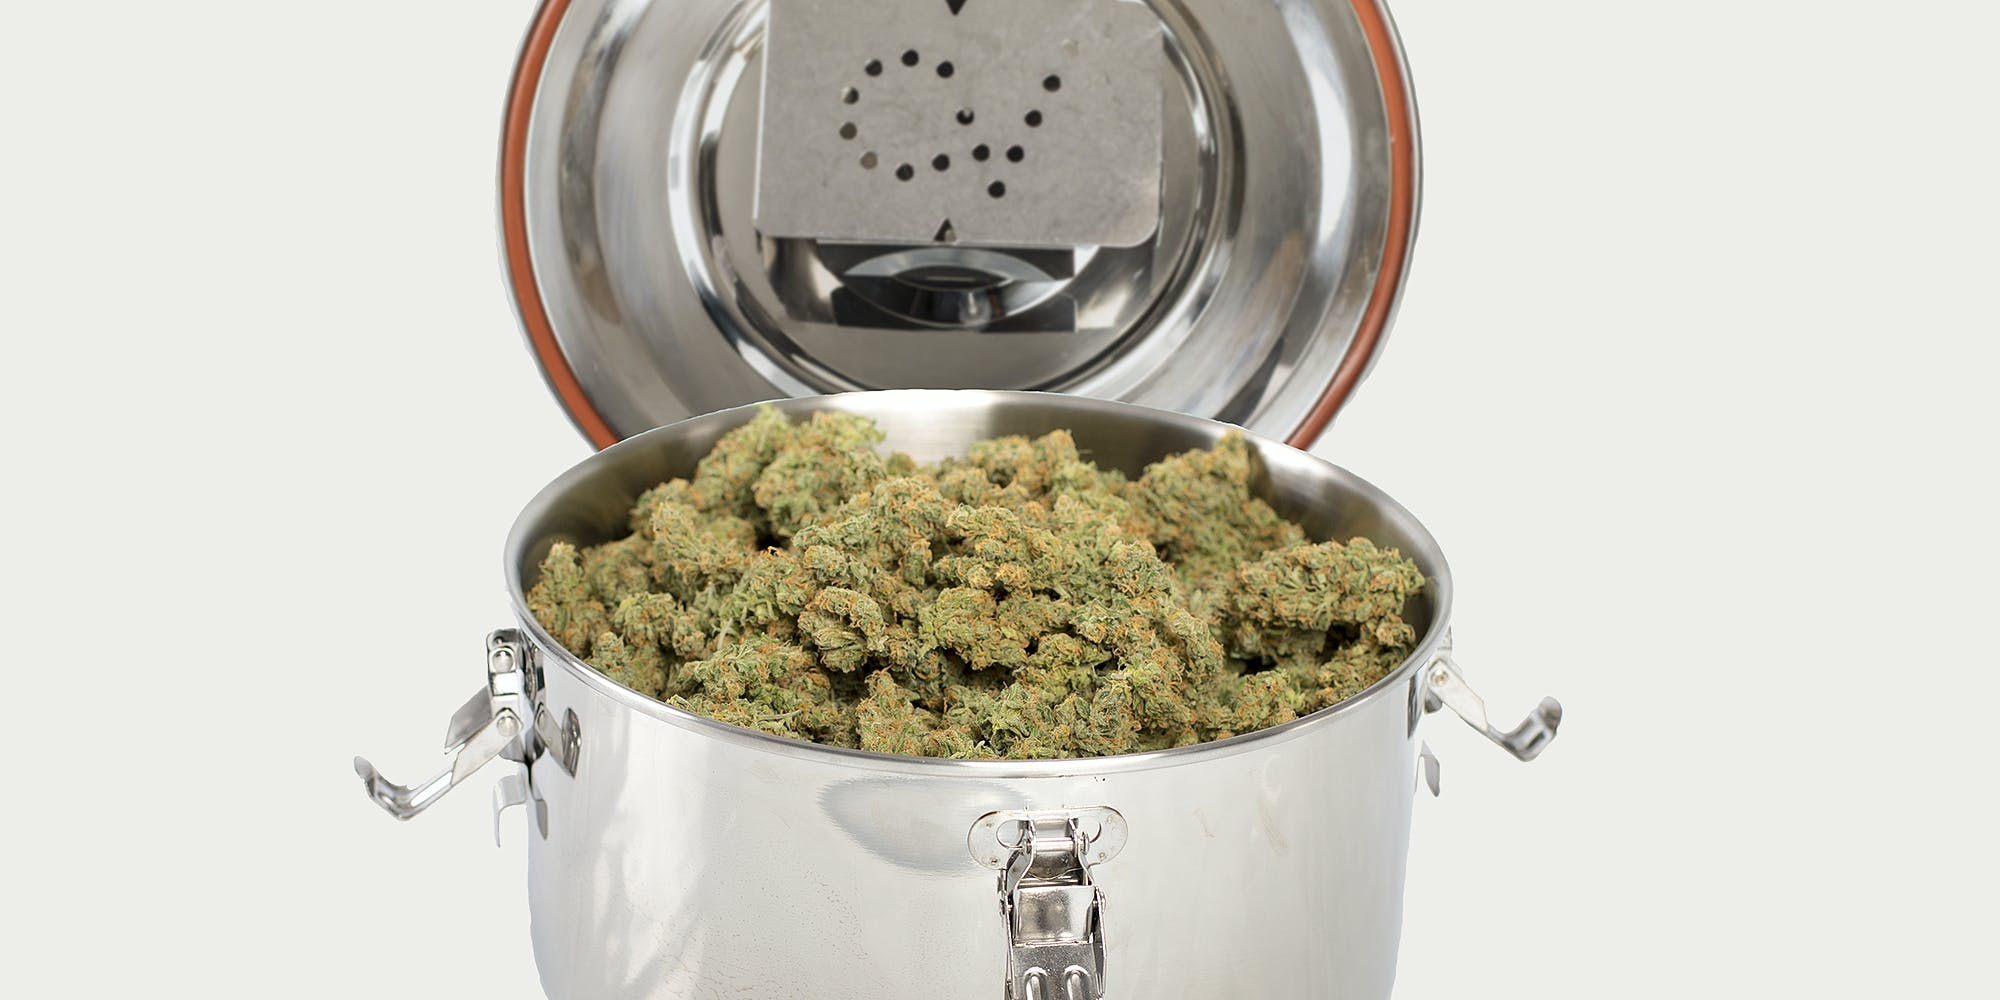 Keep your weed fresh with the CVault Storage Containers